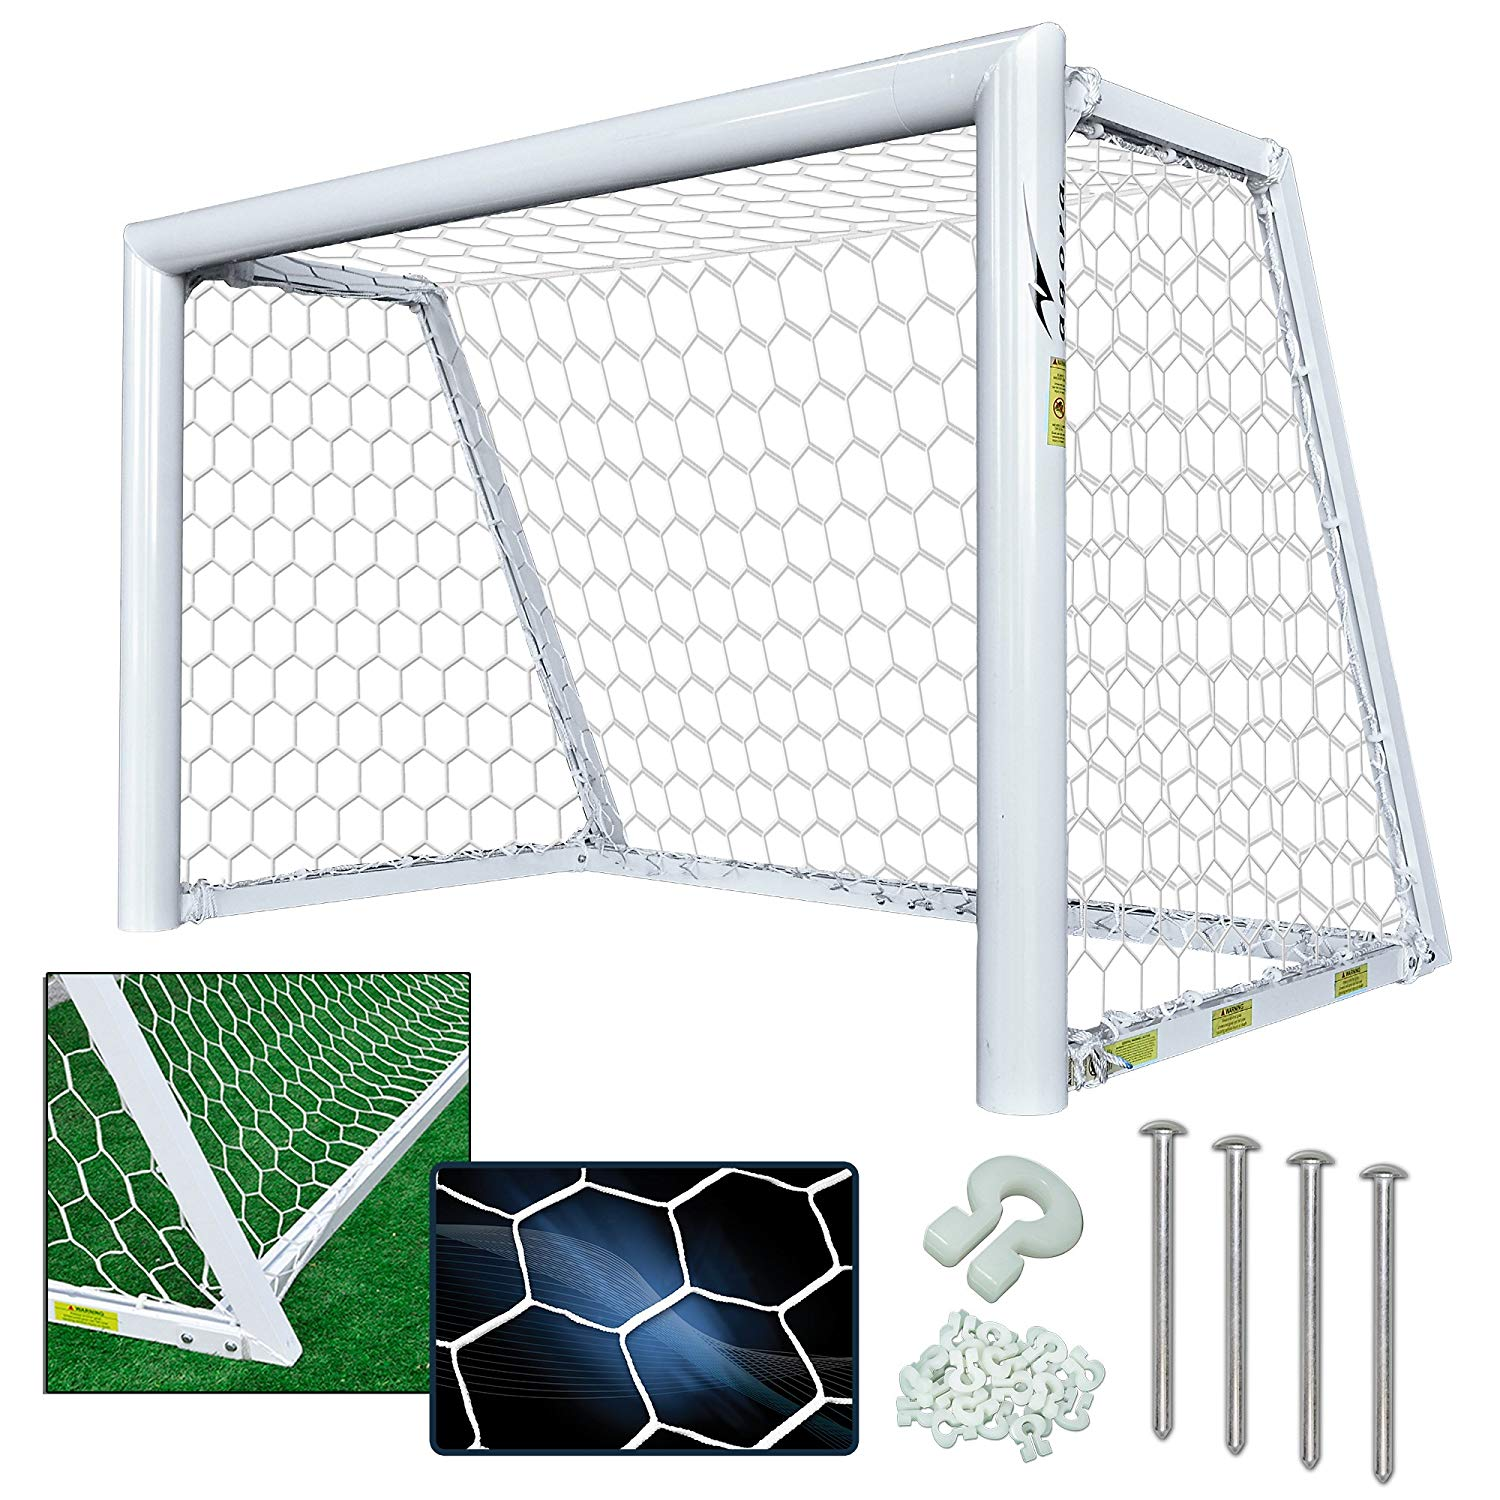 f0ee21d1e Cheap Pro Soccer Goal, find Pro Soccer Goal deals on line at Alibaba.com